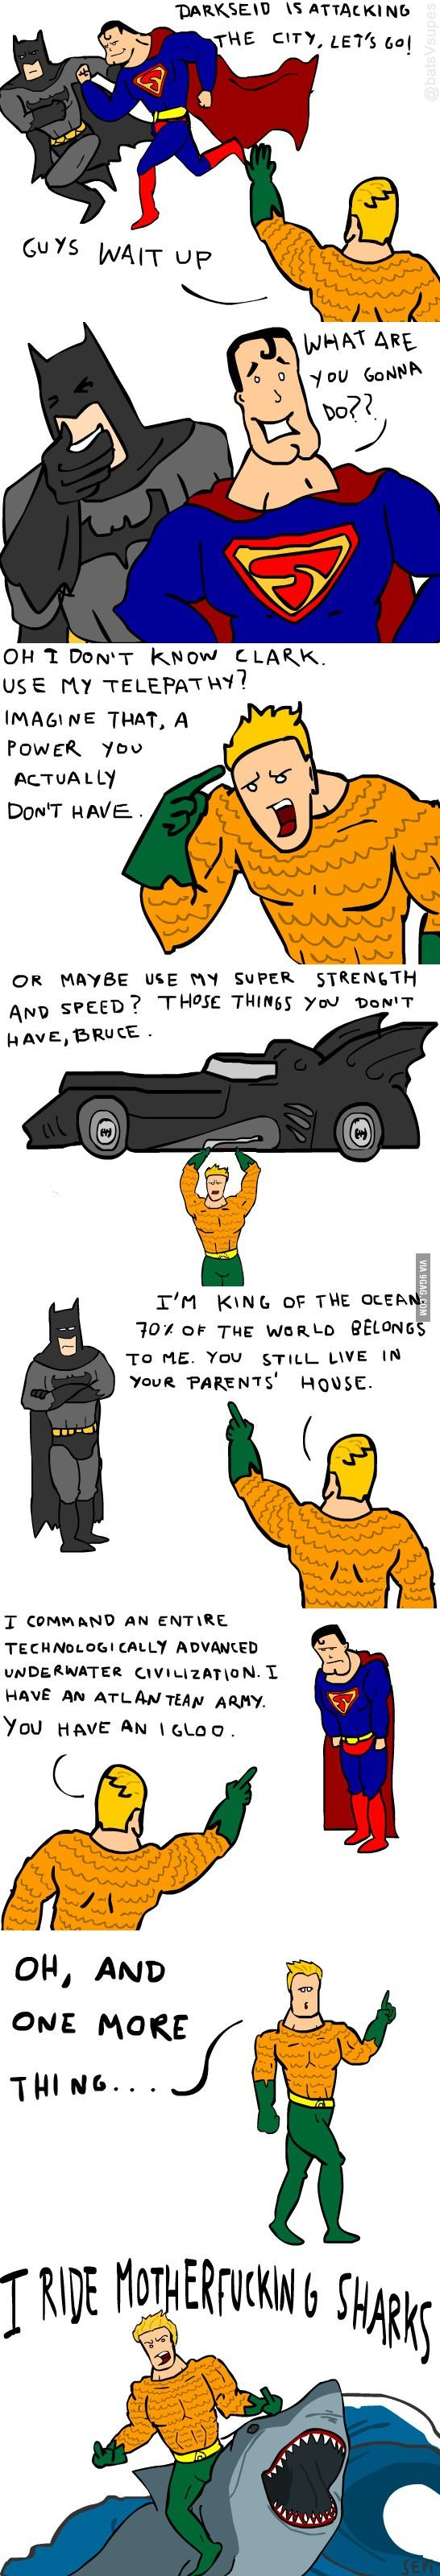 Don't Mess Wth Aquaman! Even Batman Can't Beat Him! <<<< uhh batman can beat anyone